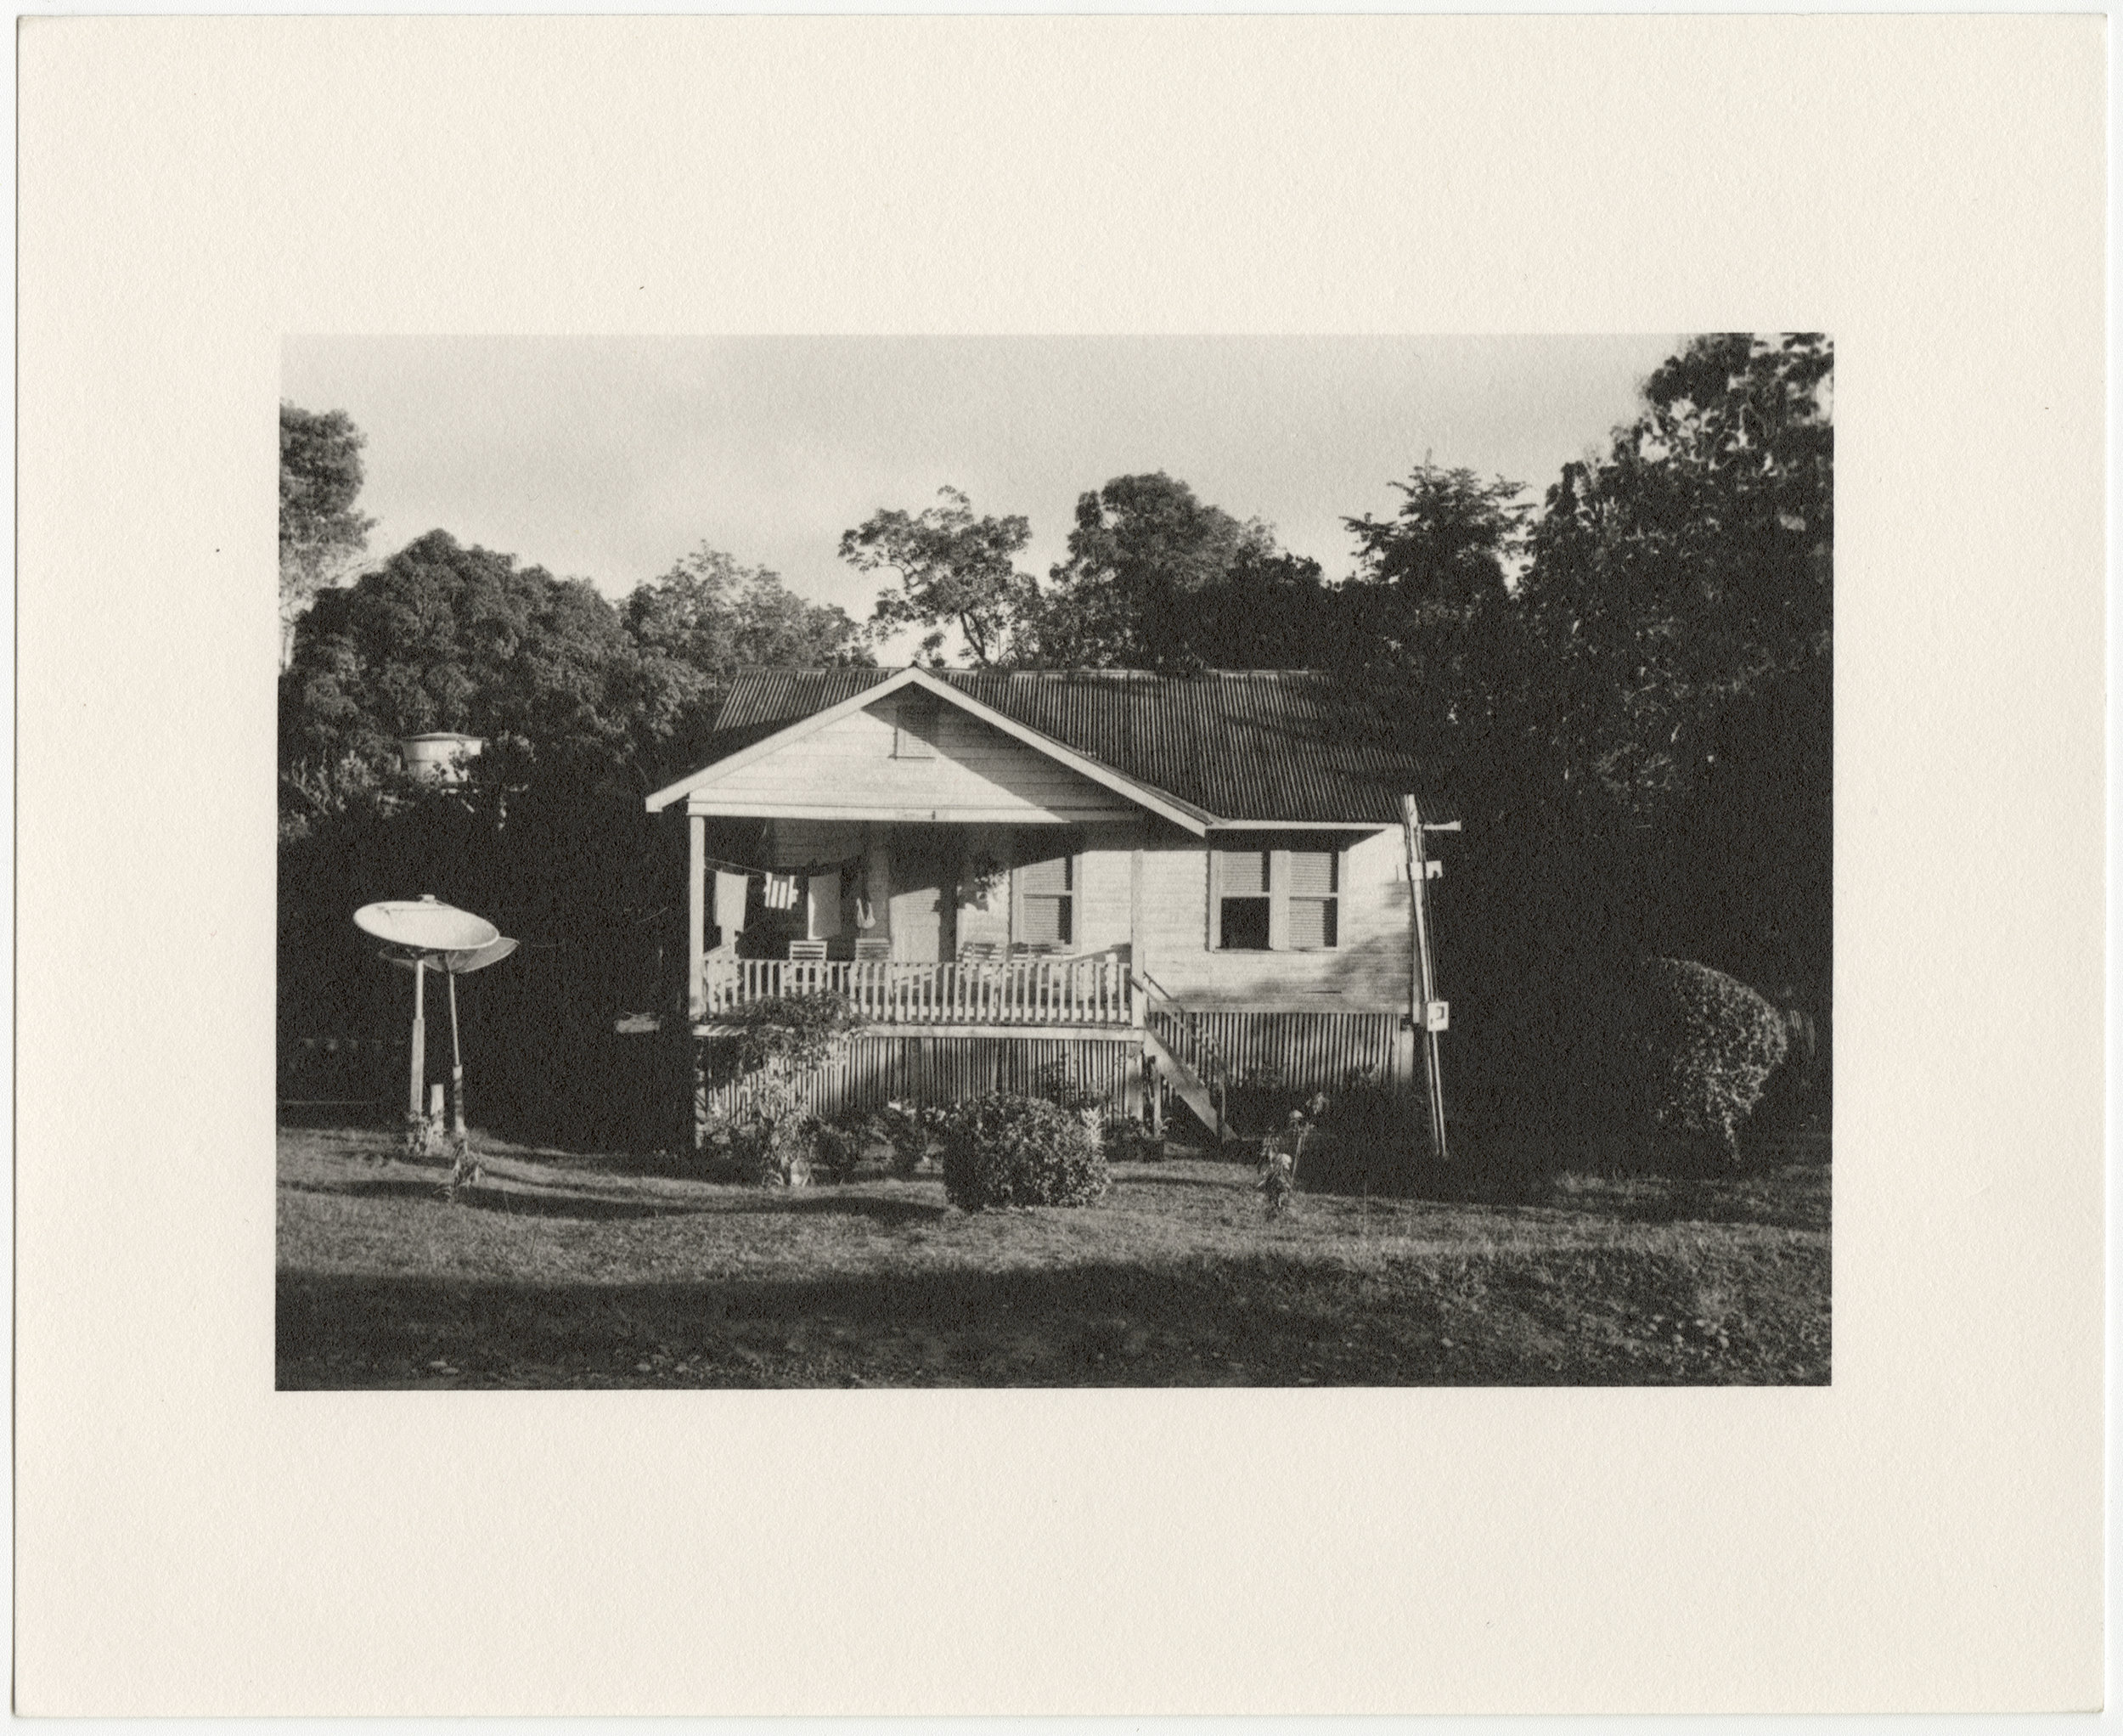 "Fordlândia employee house with satellites, built in 1929-1933 by the Companhia Ford Industrial Do Brasil Ford Motor Company. 2014, Fordlândia, Pará, Brazil. Gelatin silver fiber print, 8"" x 10"", 2014/2018"